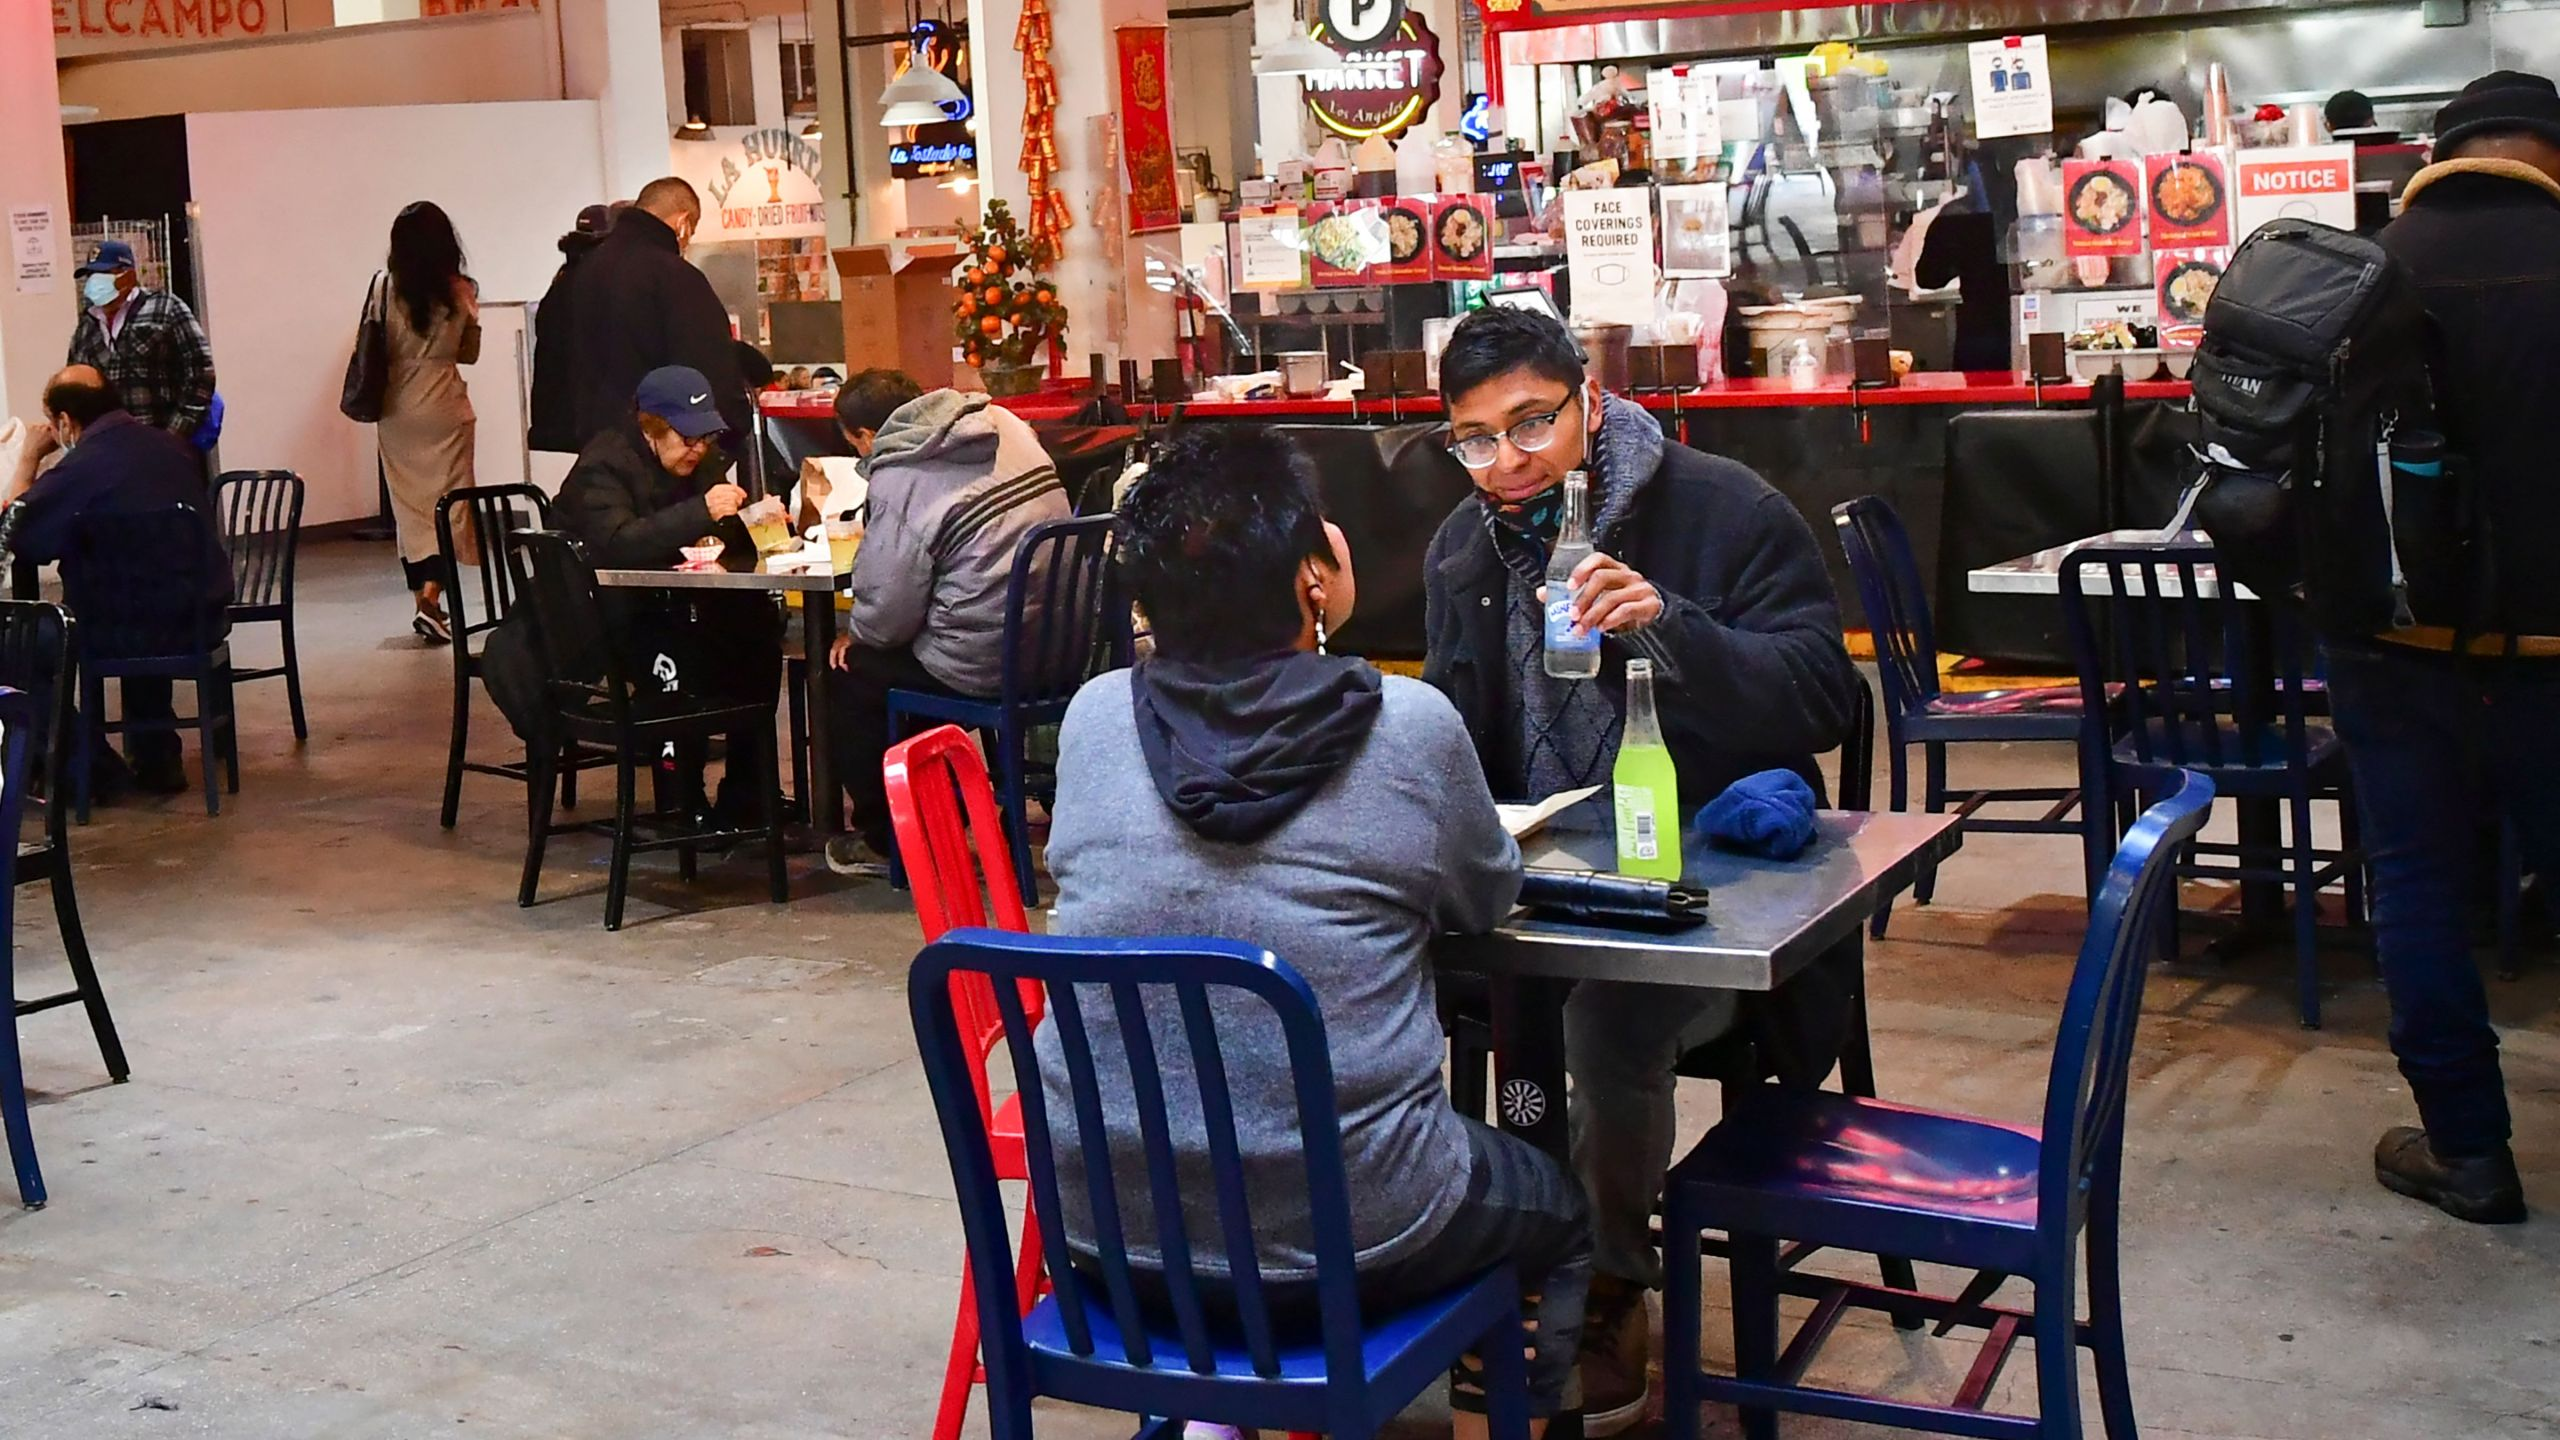 People enjoy lunch at Grand Central Market as indoor dining reopens in Los Angeles, on March 15, 2021. (FREDERIC J. BROWN/AFP via Getty Images)